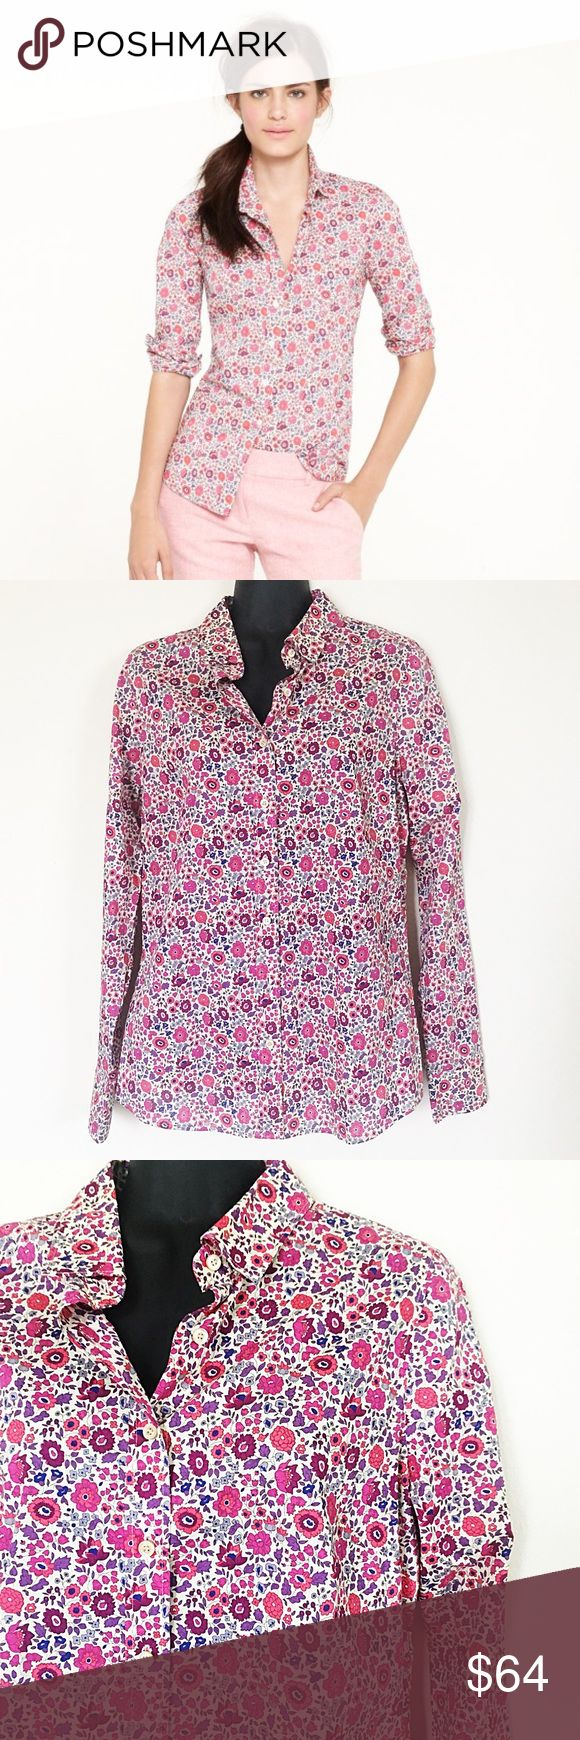 J Crew Liberty Perfect Shirt In D'Anjo Style 86155 •Liberty 'Perfect' Shirt in D'Anjo •Signature Print from London's Liberty Art Fabrics •- A Vintage Pattern from the Liberty Archives •Floral Pattern •Wear Anywhere •Relaxed, Comfortable Fit •Precisely Placed Bust Darts •Back Princess Darts for a Slimming, Waist Defining Fit Size: 6 Color: Pink, Red, White Condition: Like New Material: 100% Cotton  Measurements: Bust: 37 inches Length: 26.5 inches All measurements are approximate.  No stains…